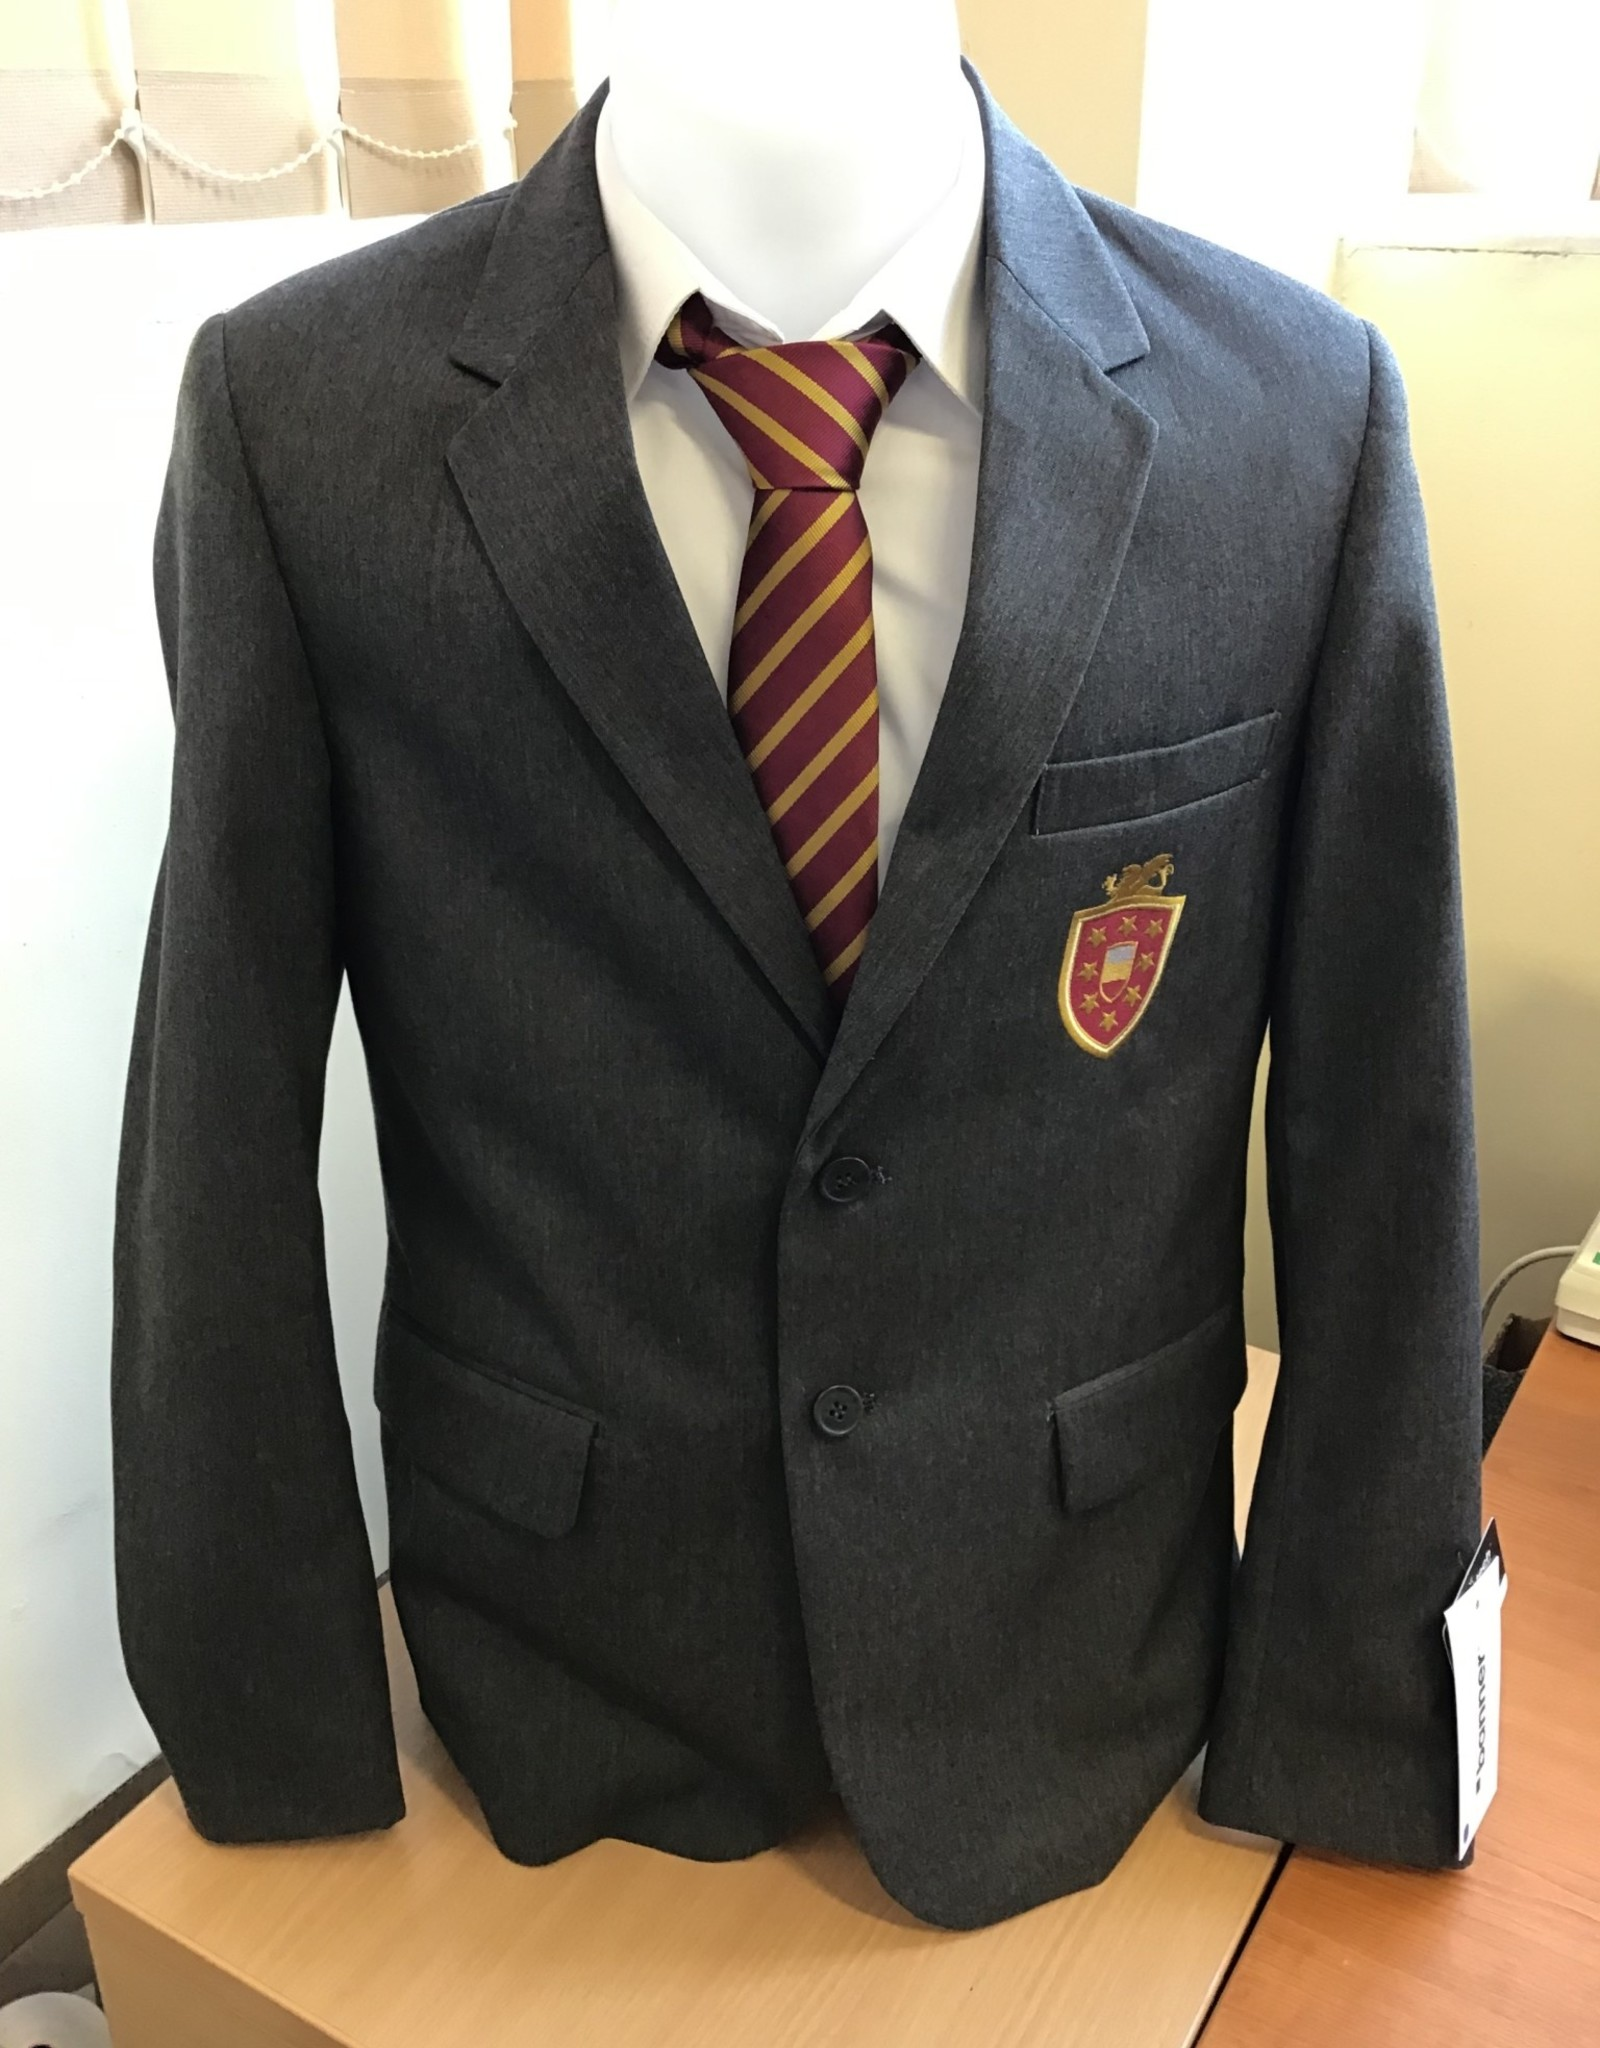 ASPIRE Boys Blazer - Child Size-Nicholas Chamberlaine School